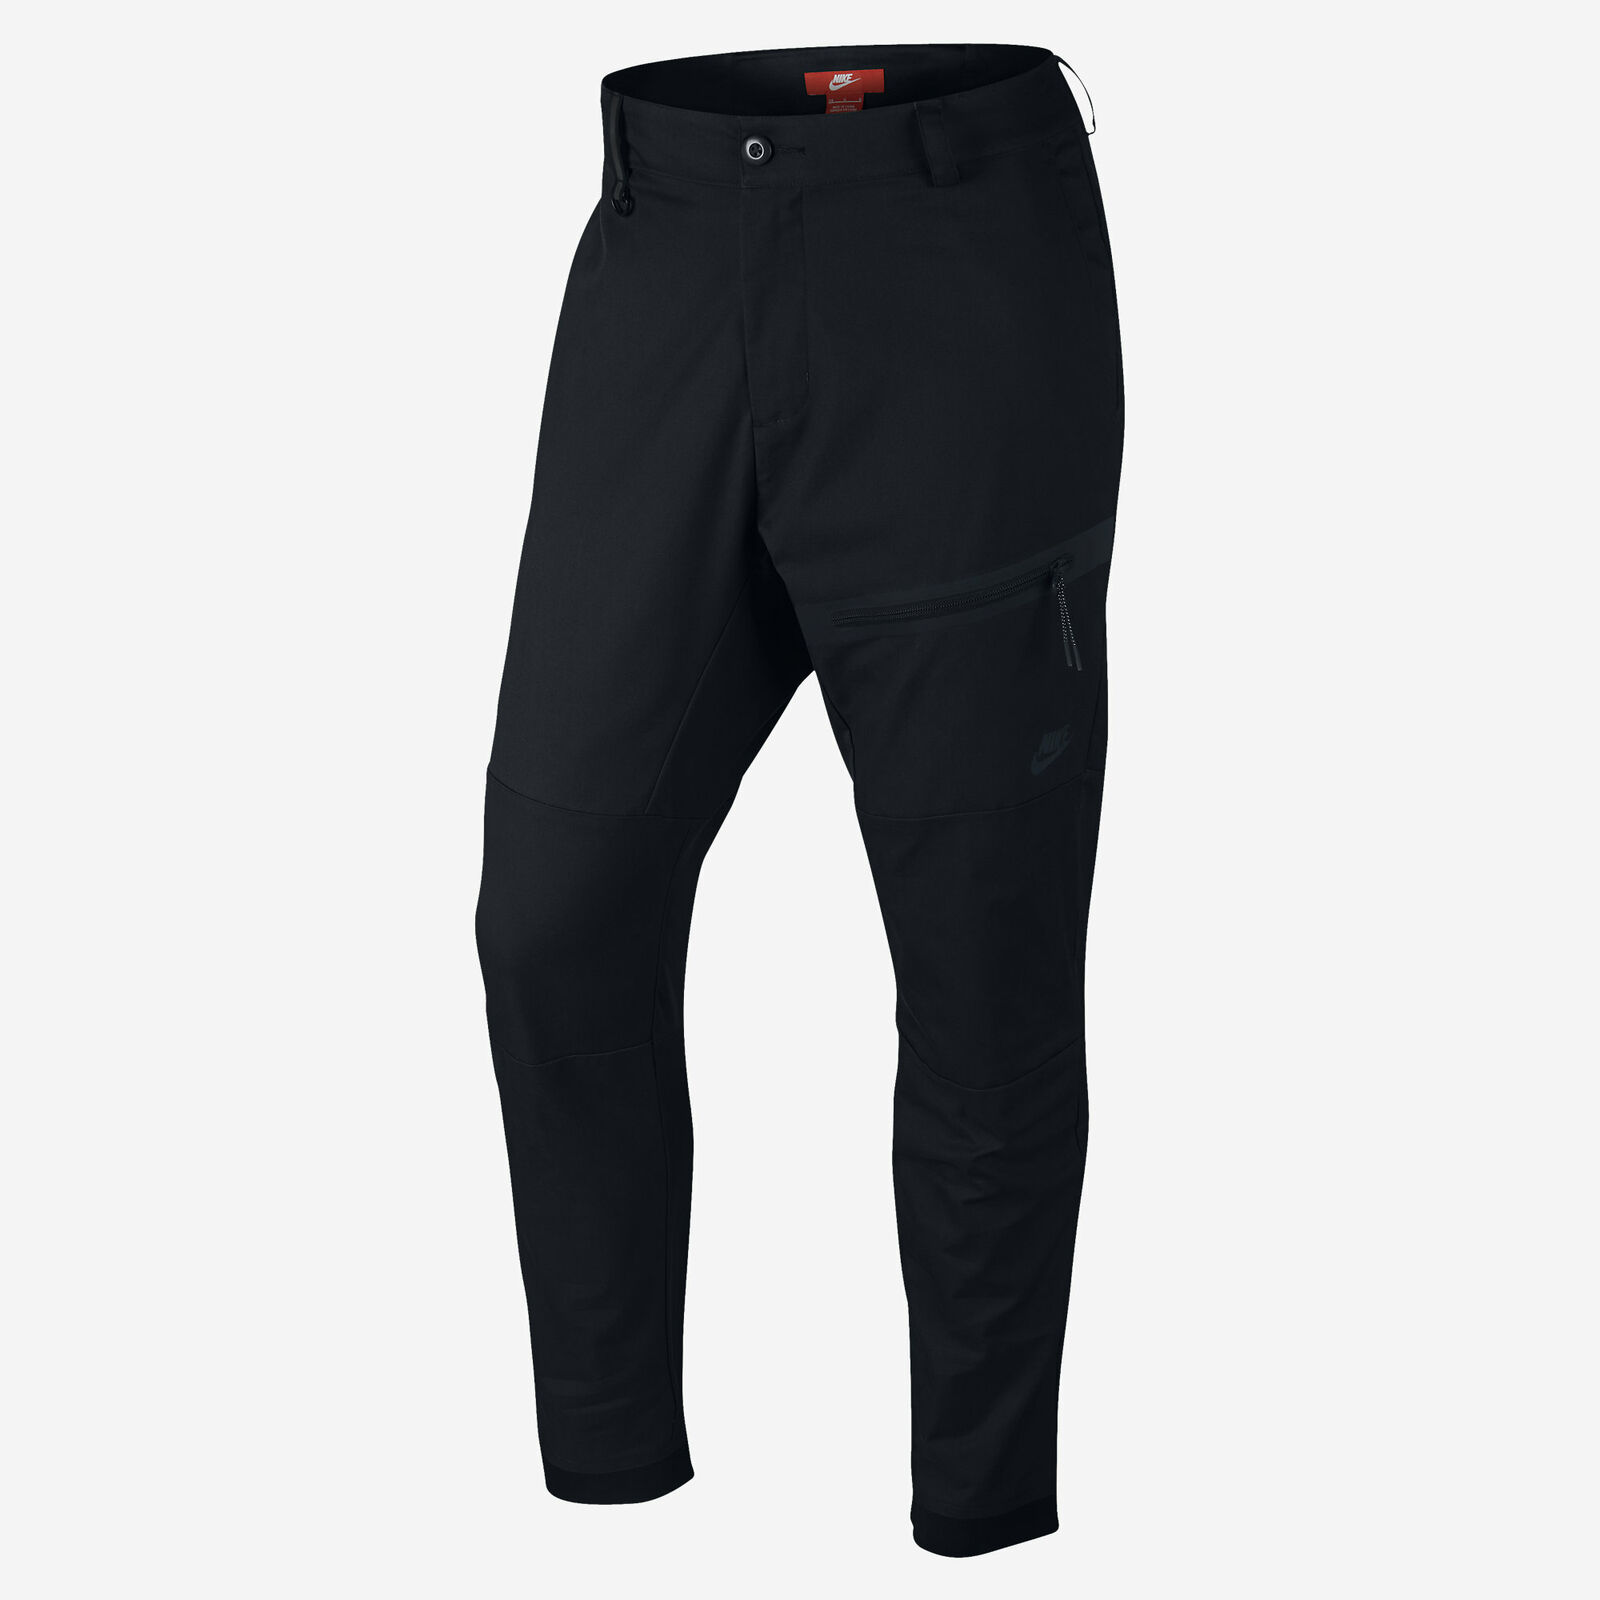 NIKE BND WVN PANT-THE ONE Mens 727344-010 MSRP   140